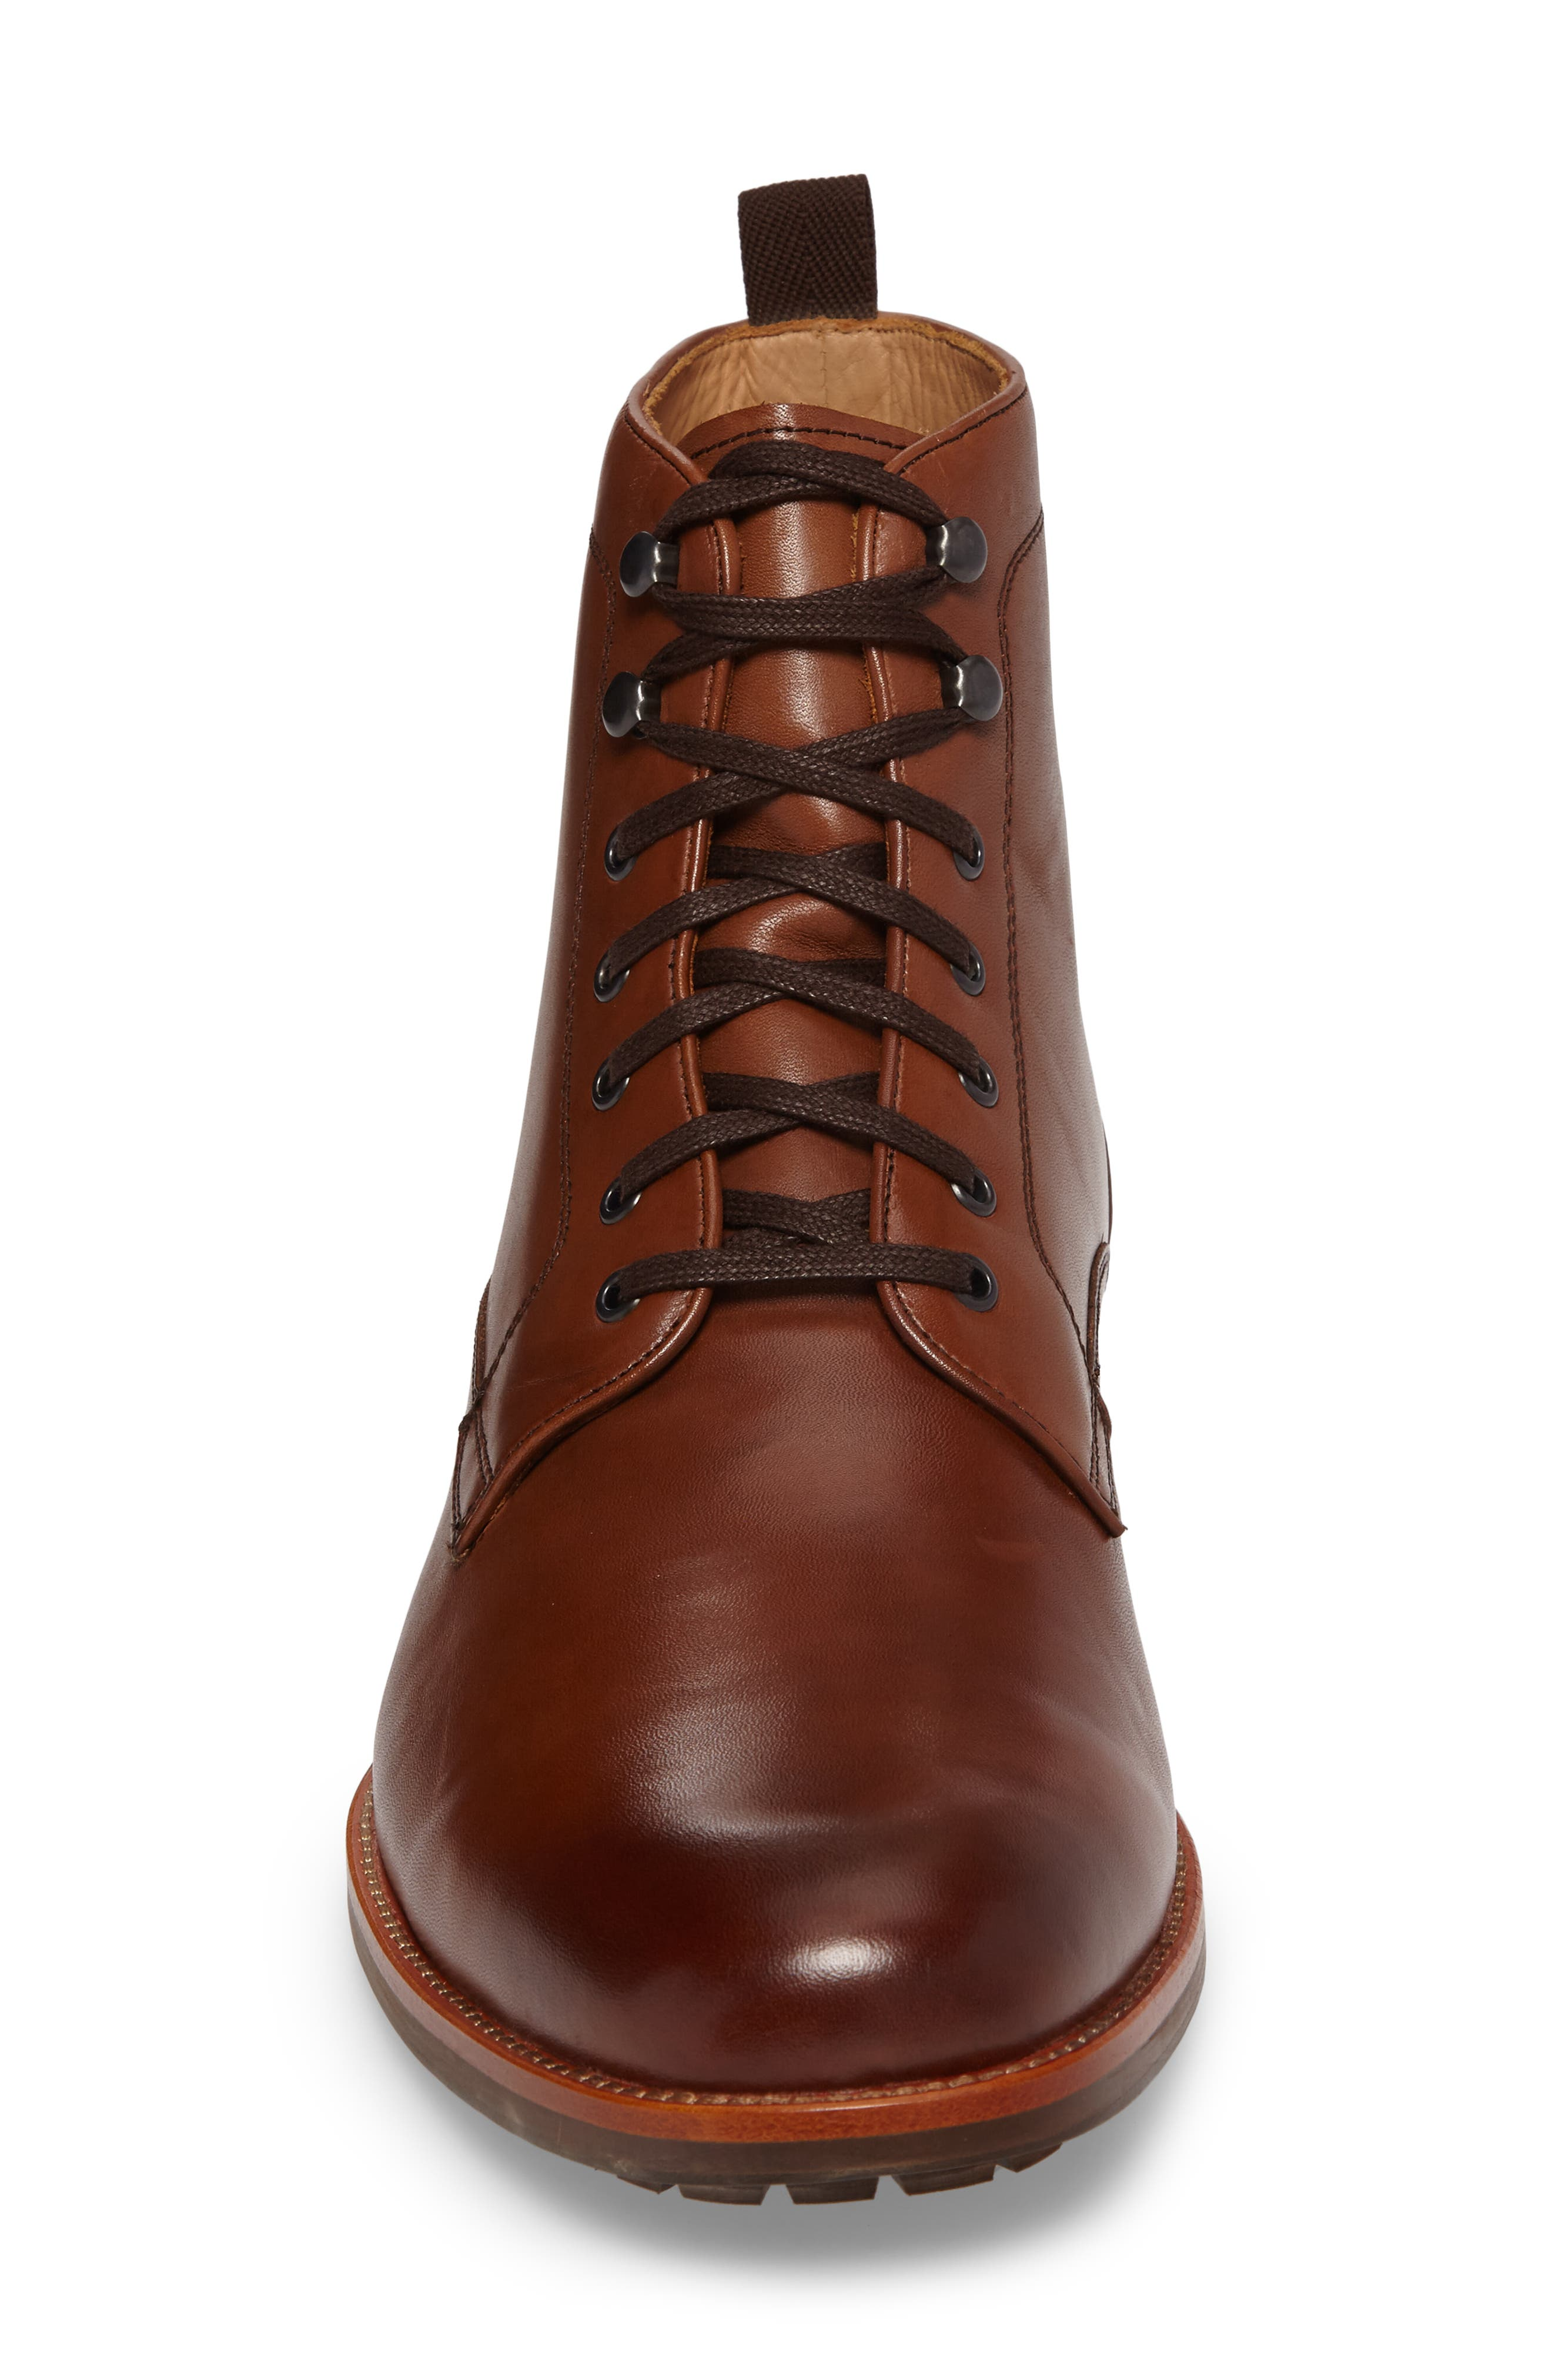 Axeford Plain Toe Boot,                             Alternate thumbnail 4, color,                             Luggage Leather